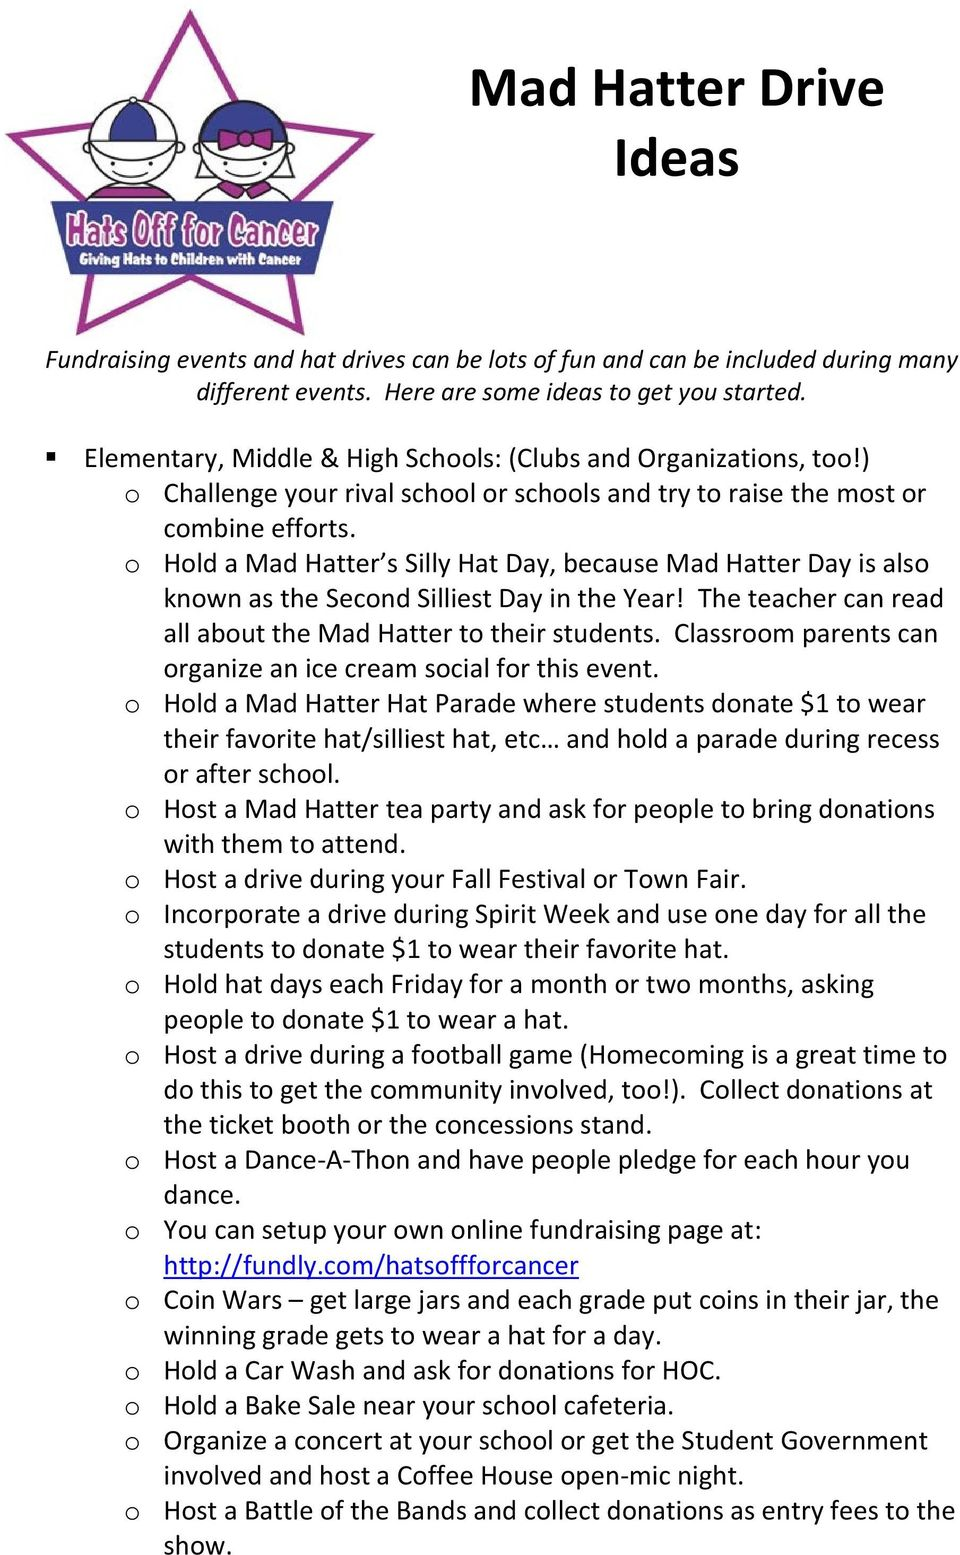 o Hold a Mad Hatter s Silly Hat Day, because Mad Hatter Day is also known as the Second Silliest Day in the Year! The teacher can read all about the Mad Hatter to their students.